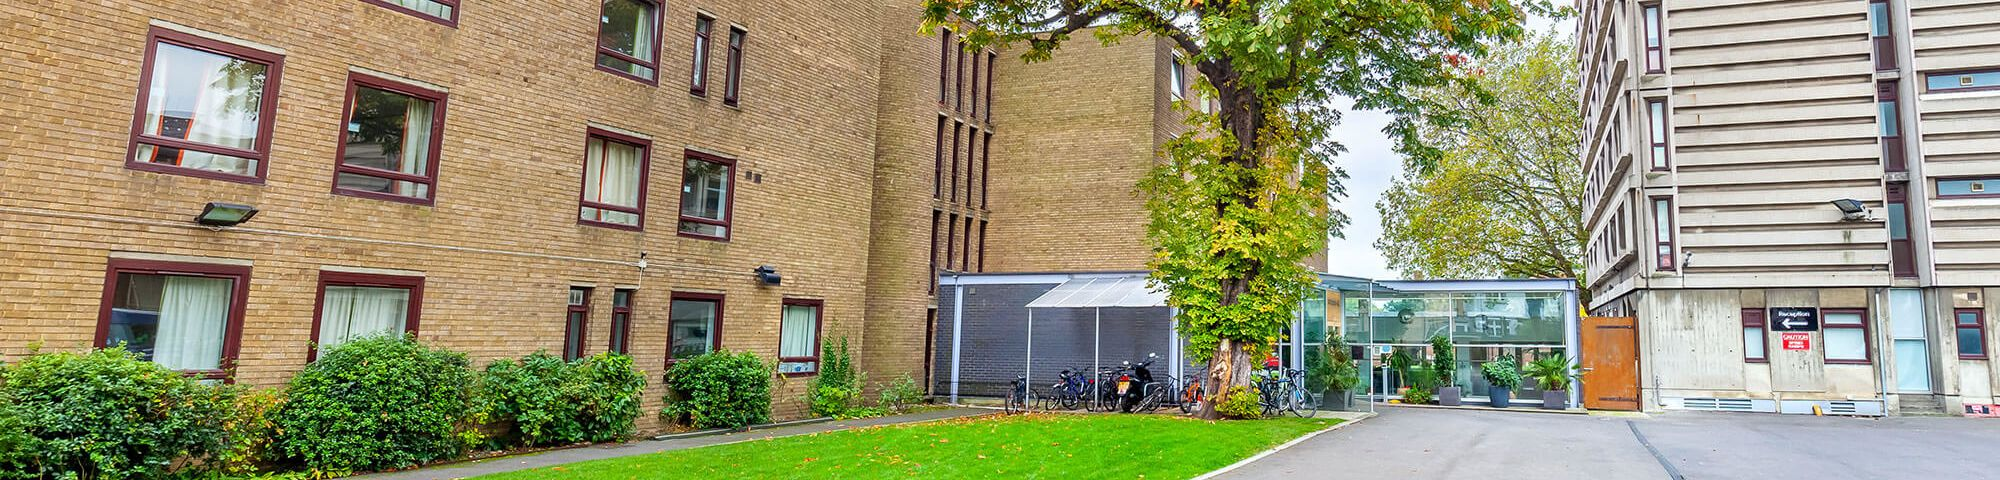 Exterior of building at Furzedown Student Village halls of residence